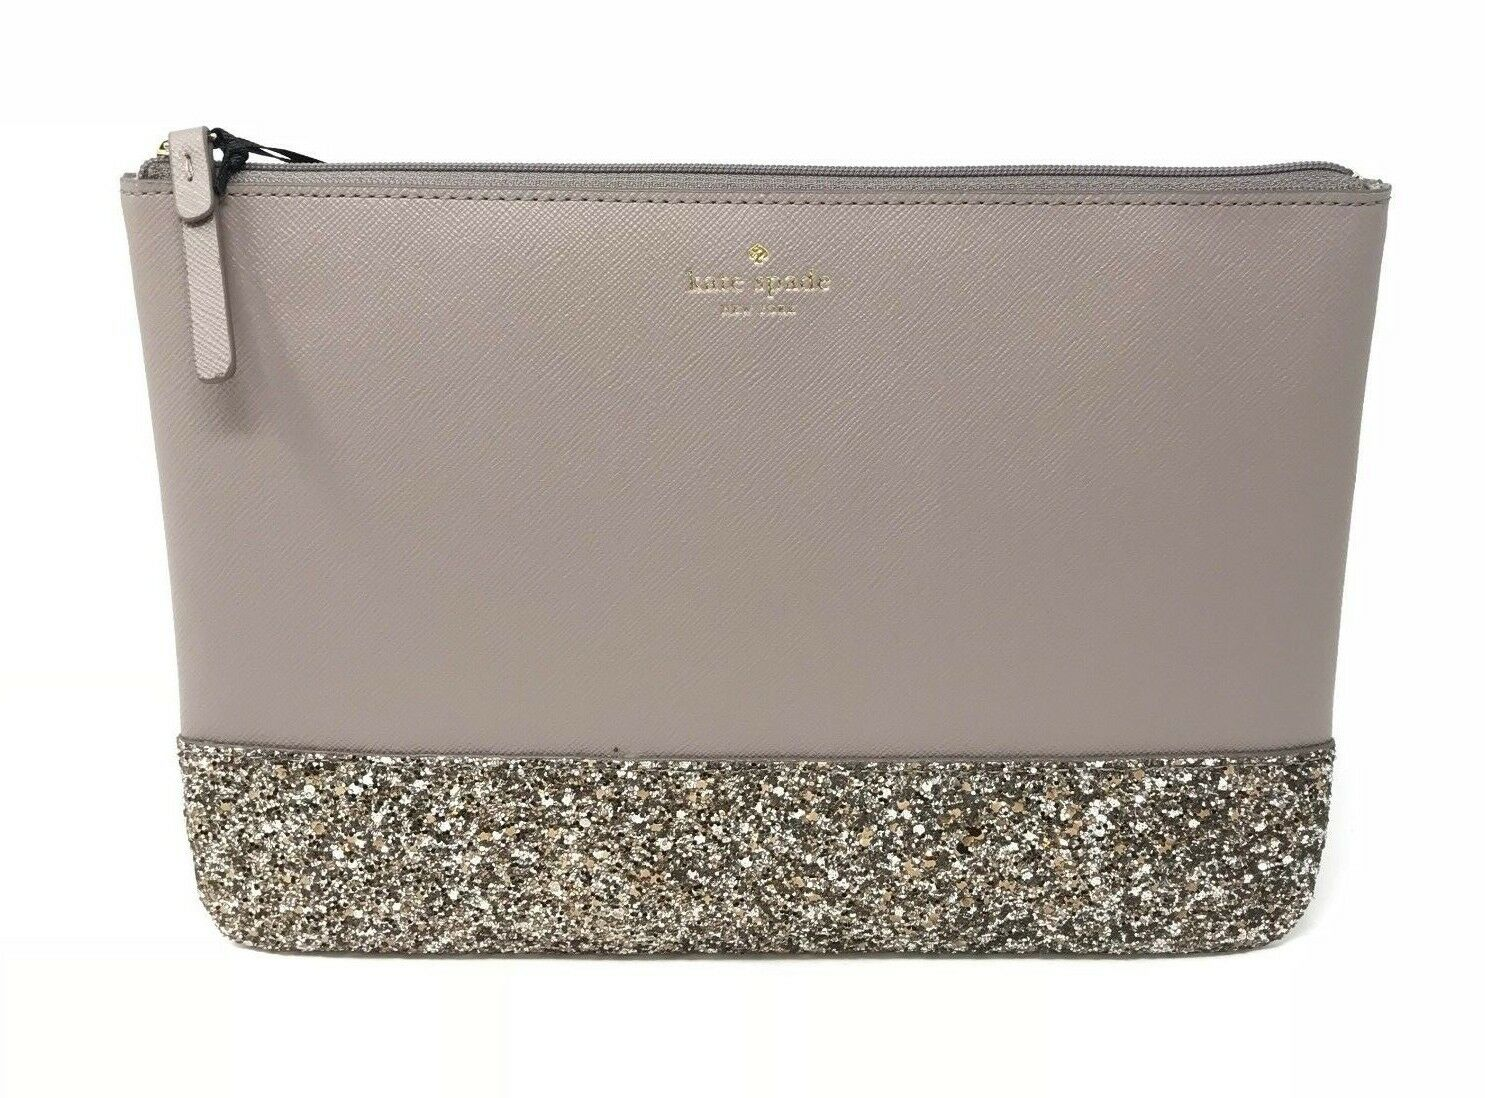 Kate Spade Greta Court Gia Clutch Cosmetic Bag Glitter City Scape Grey WLRU5216